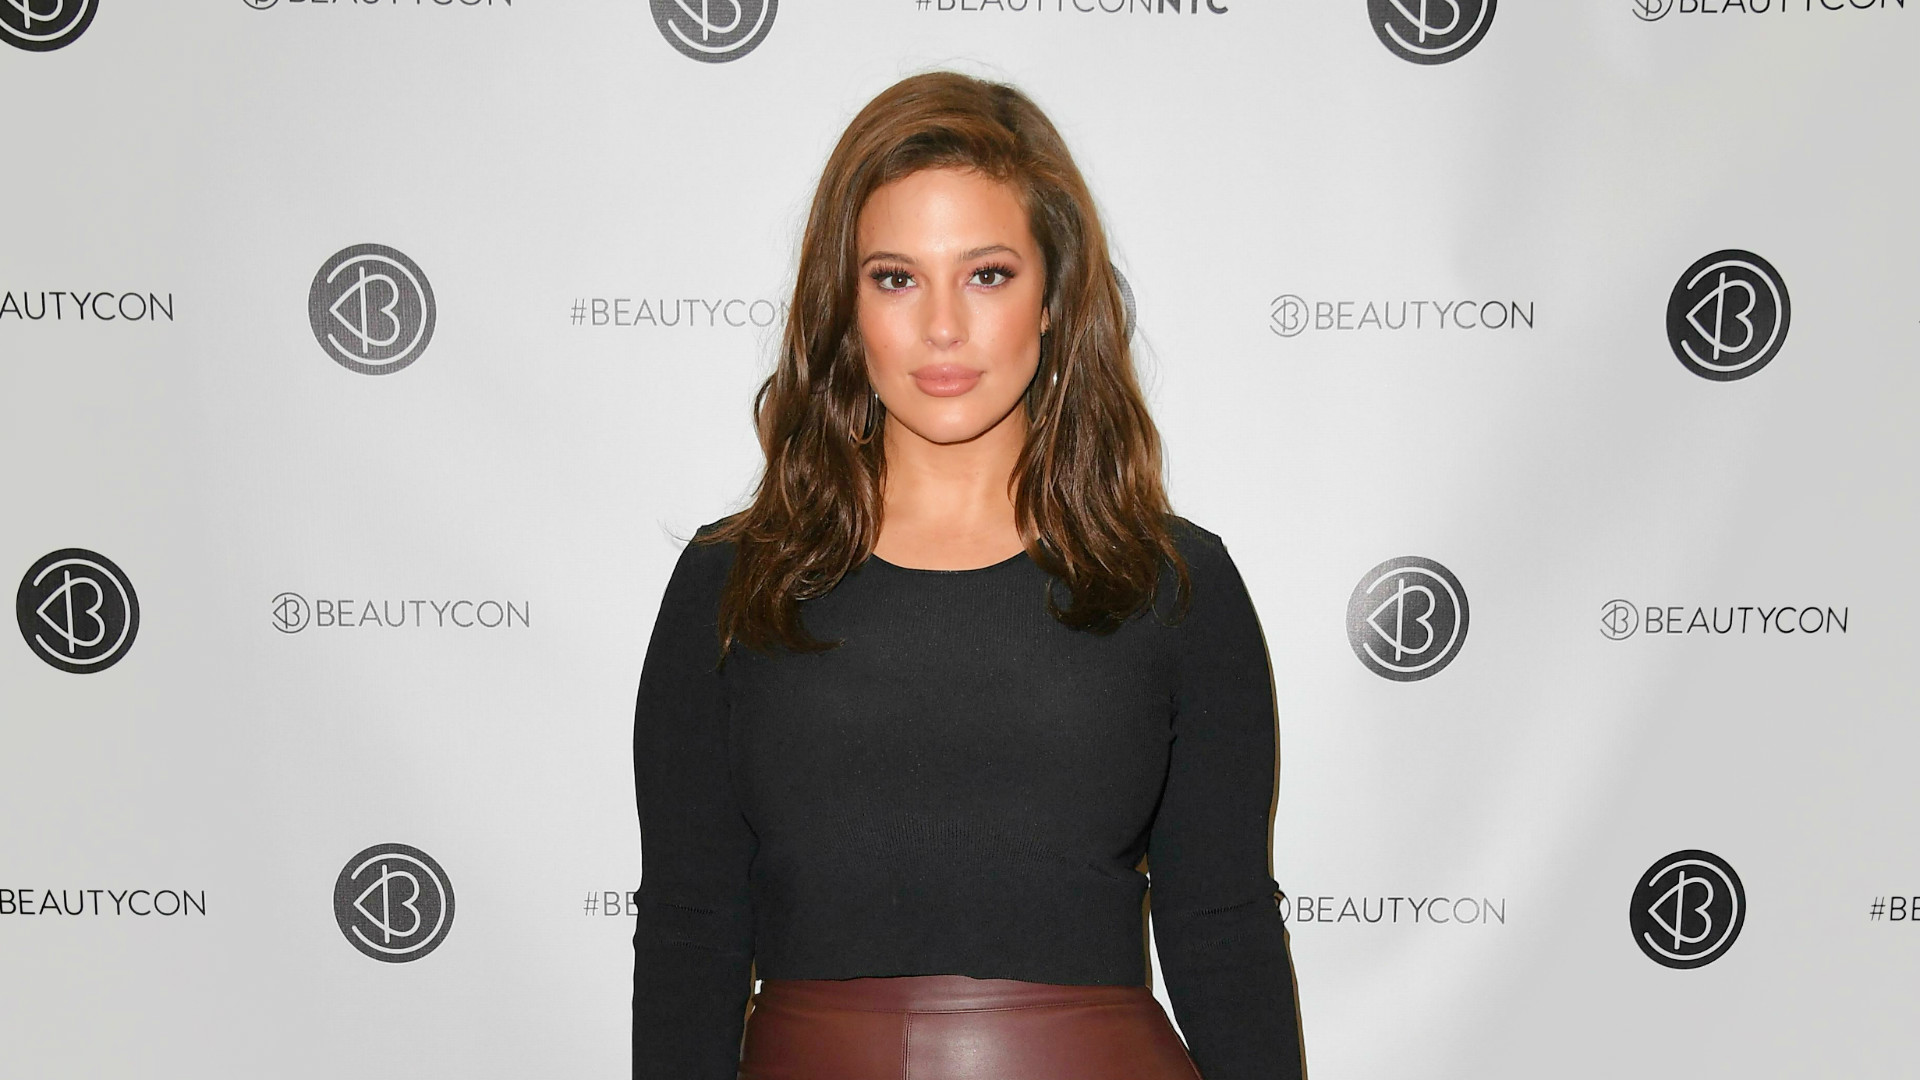 Model and body activist Ashley Graham.